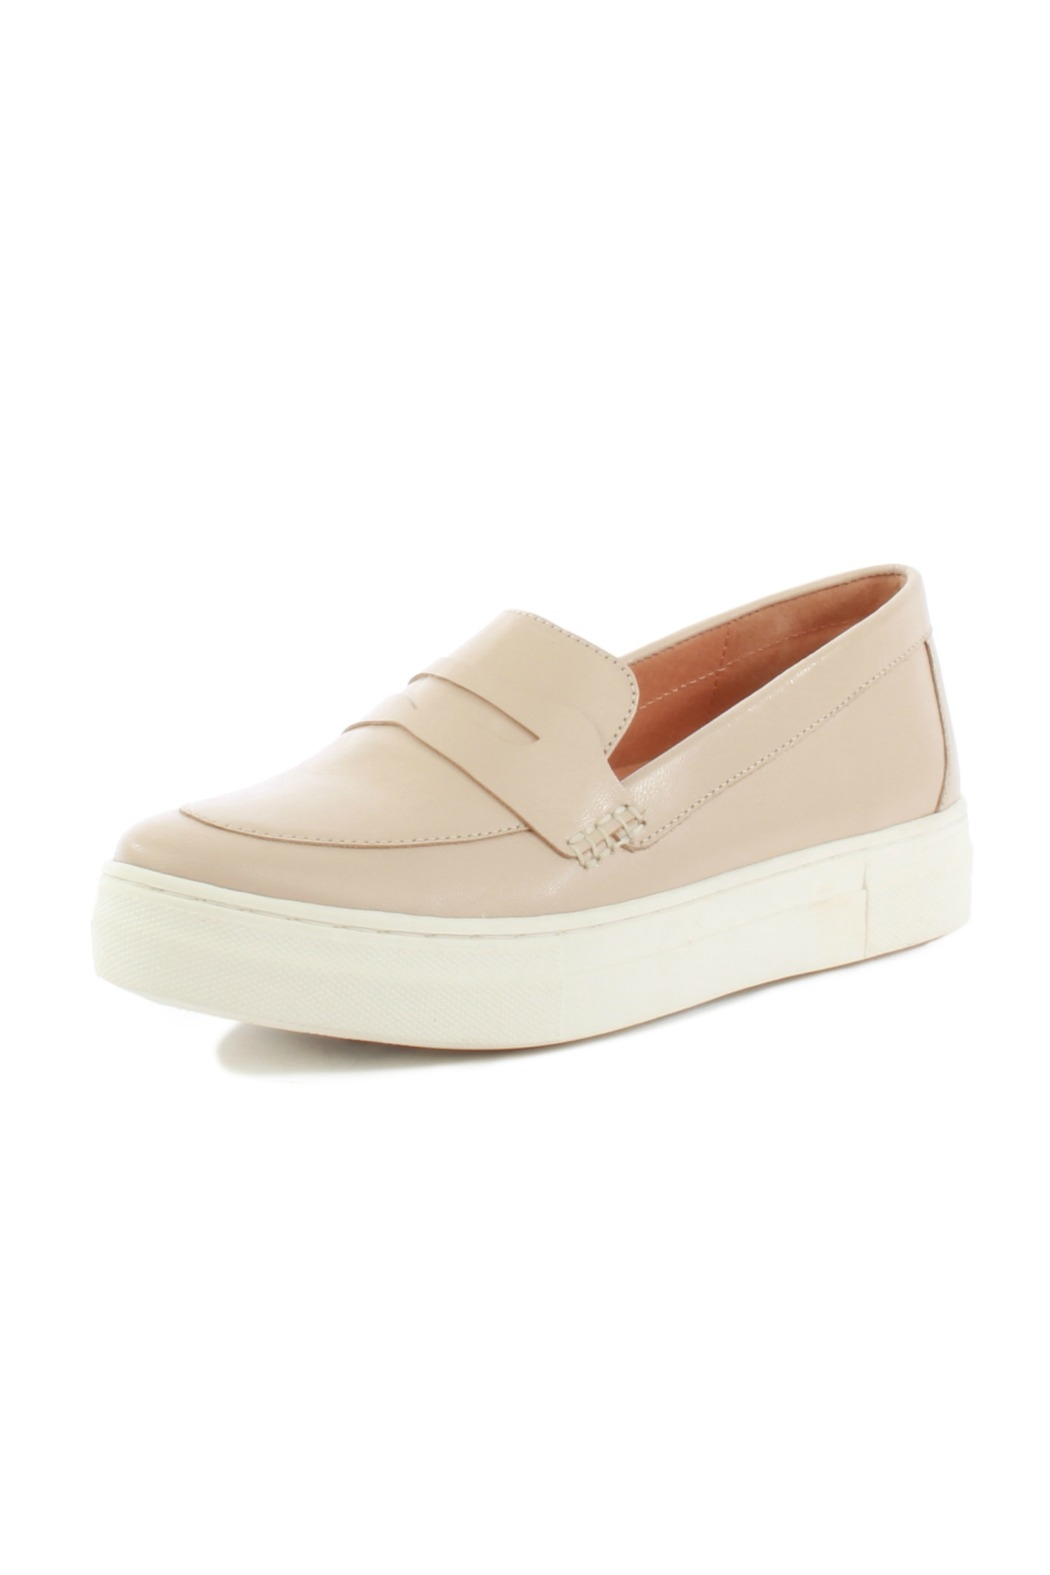 Seychelles Polar Desert Nude Leather Loafer - Front Cropped Image